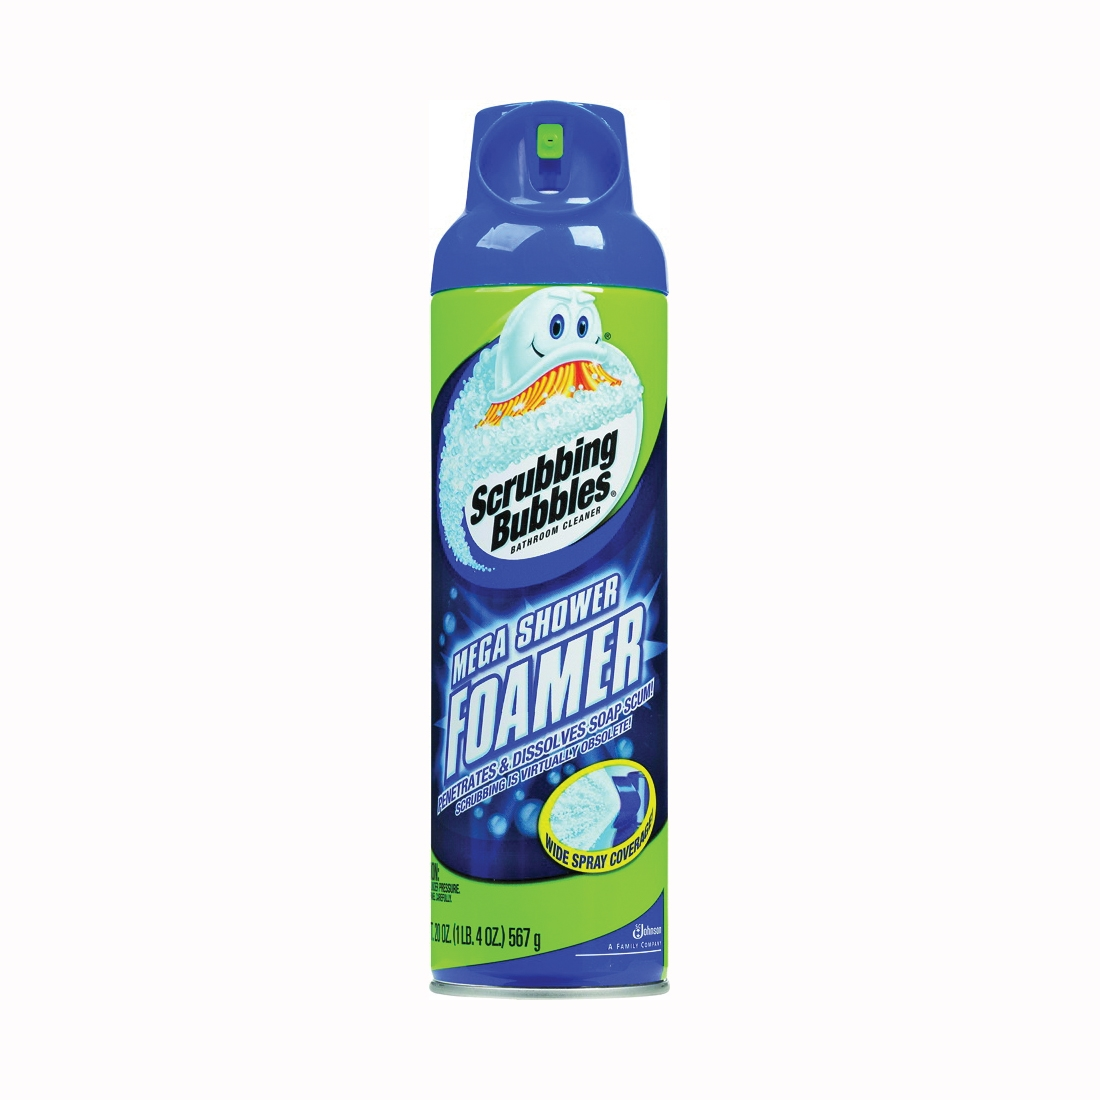 Picture of Scrubbing Bubbles 70589 Shower Cleaner, 20 oz Package, Spray Can, Marine, Ozone, Light Yellow/Transparent